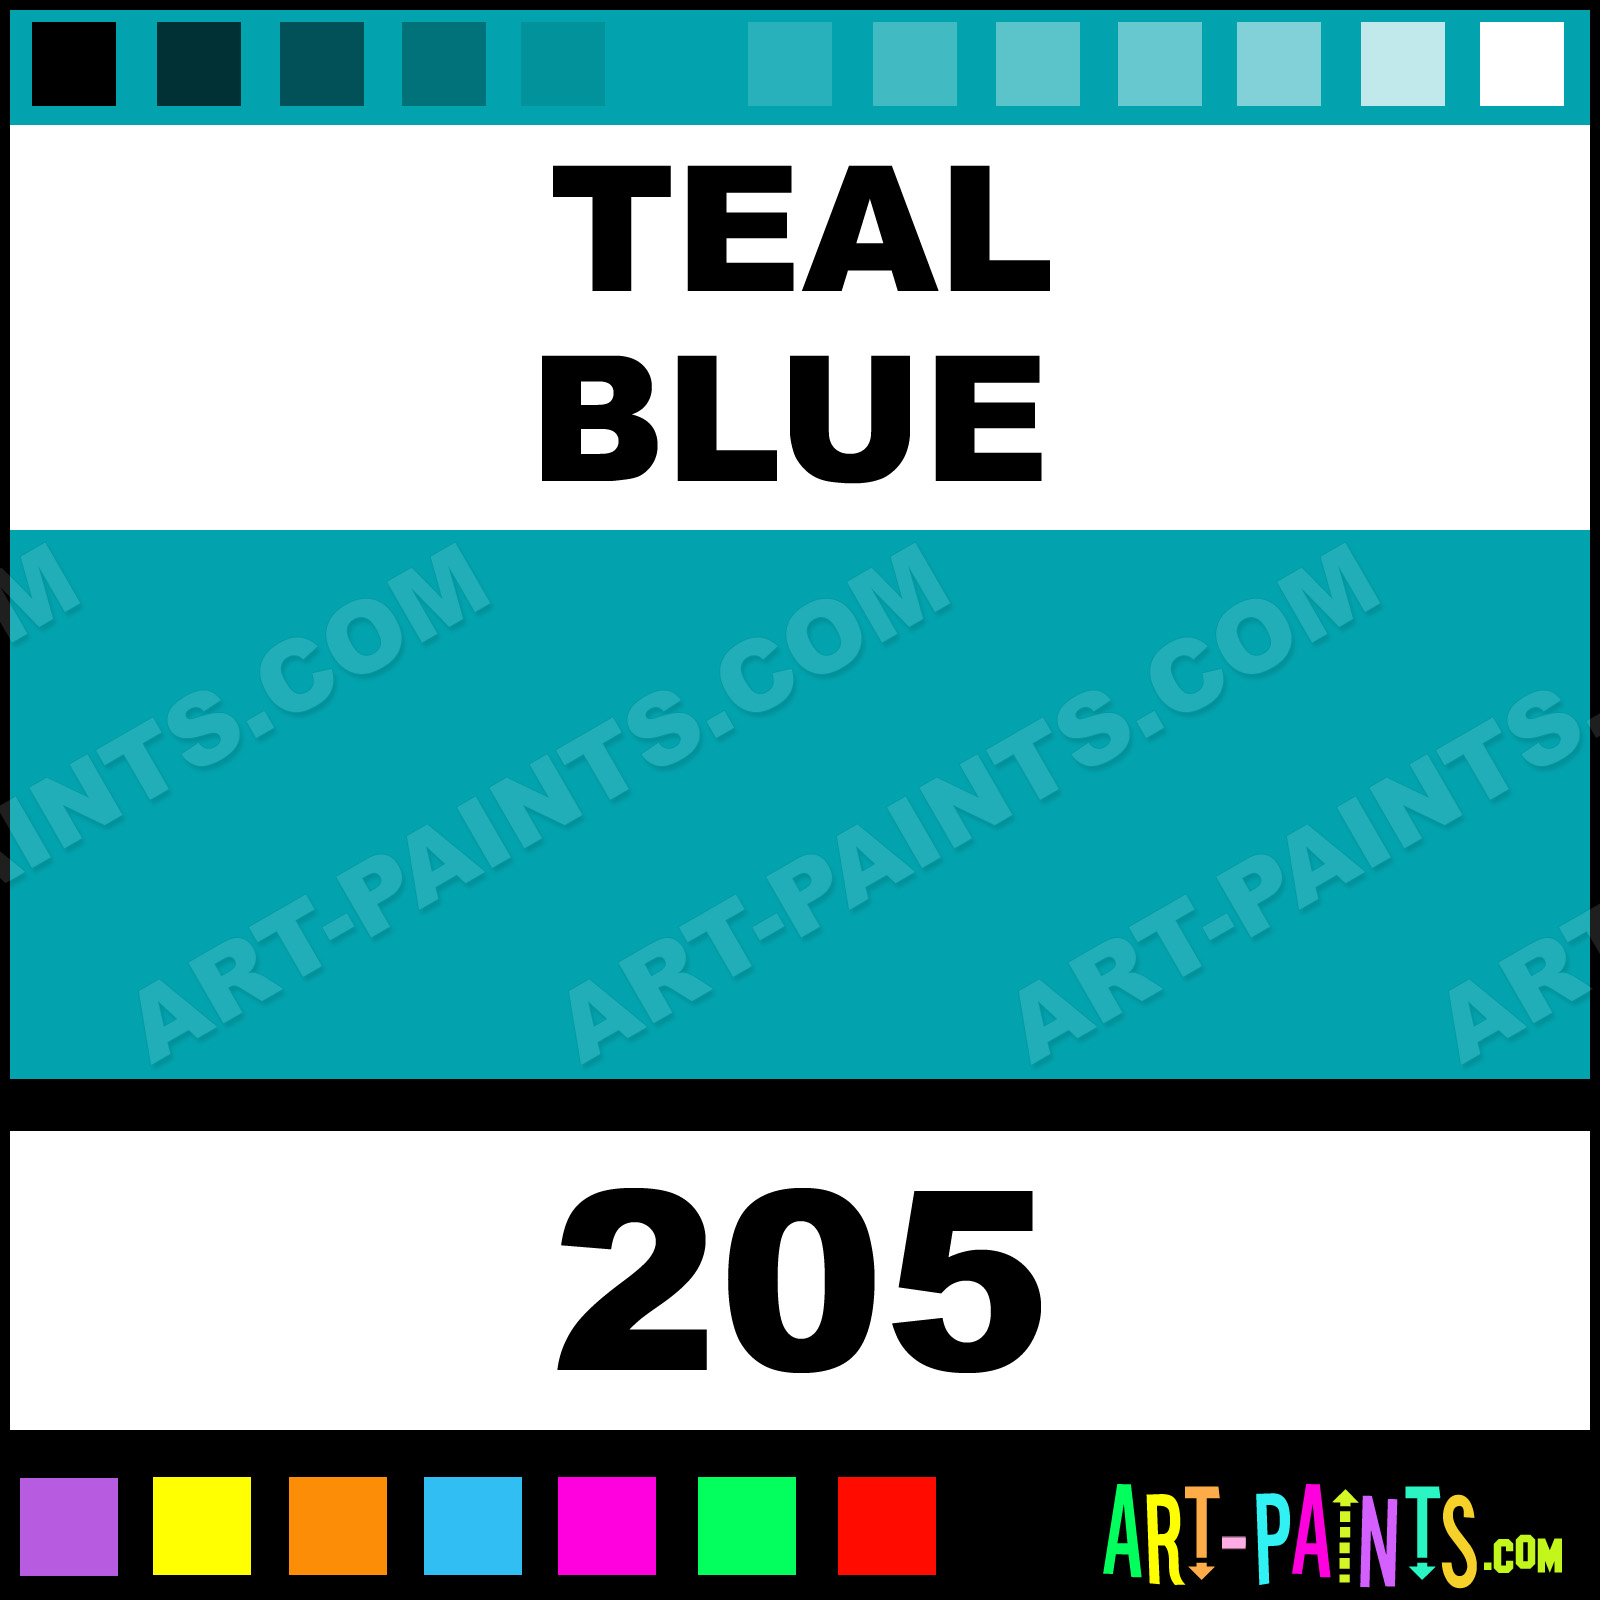 Pics for teal blue color What color is teal